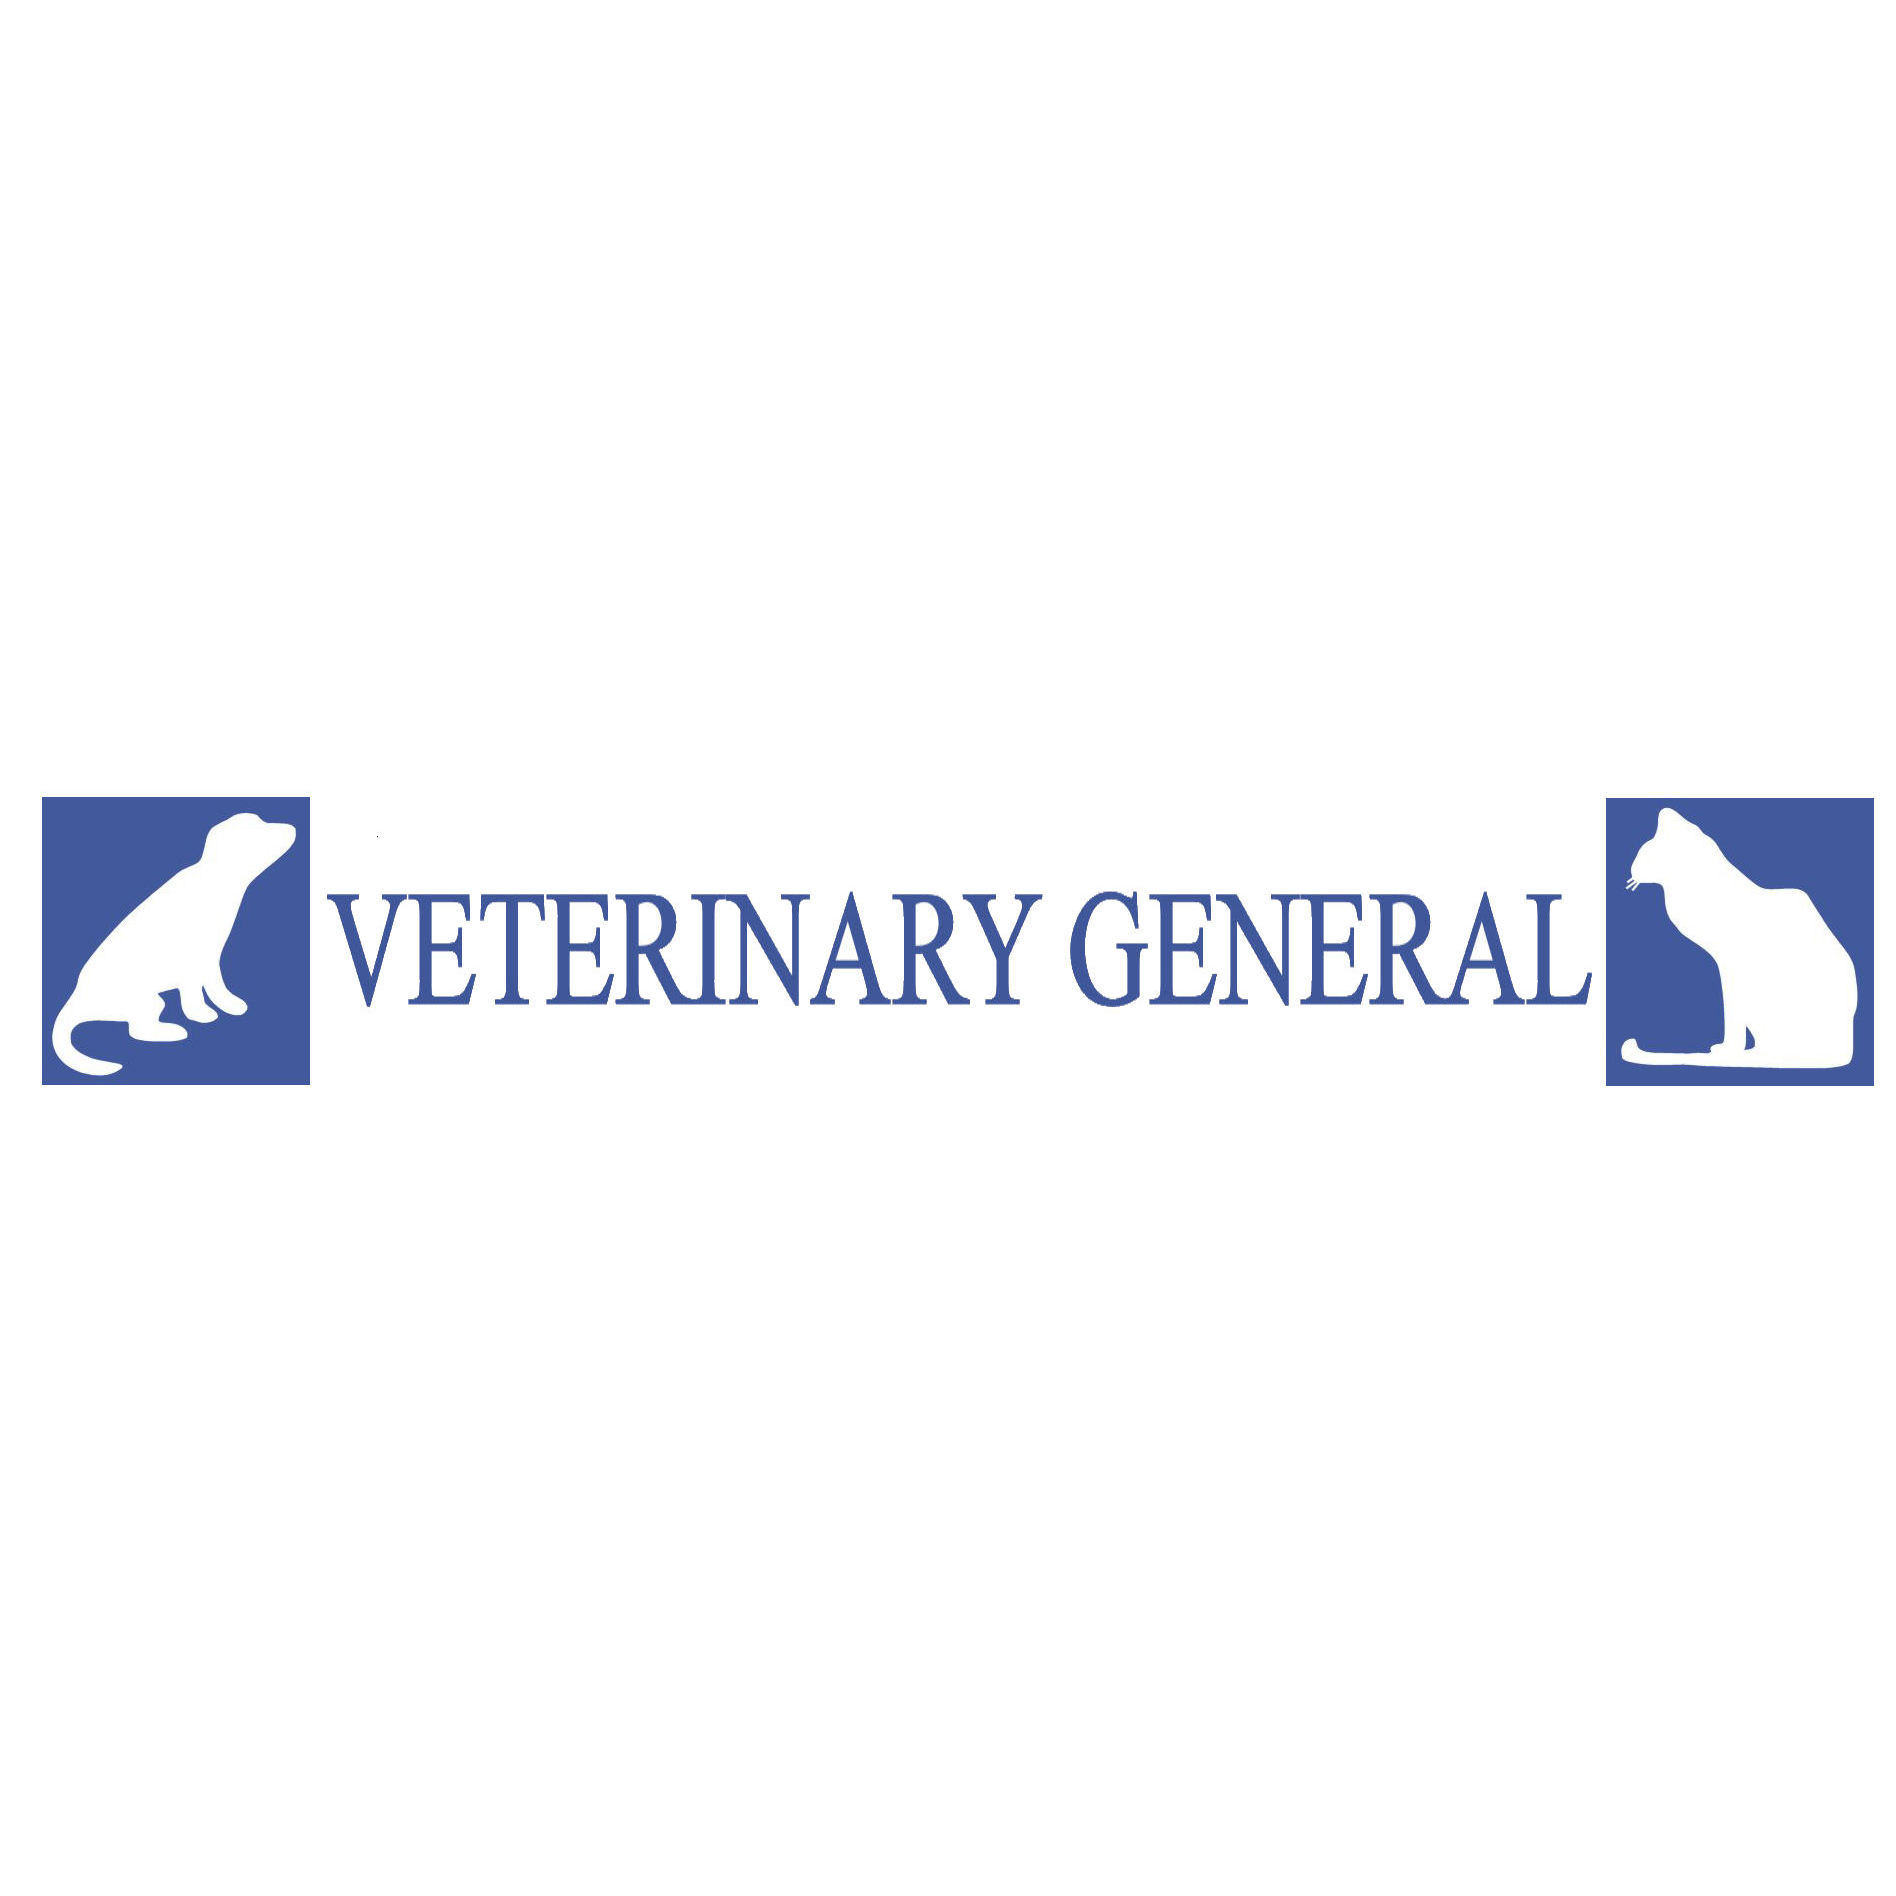 Veterinary General